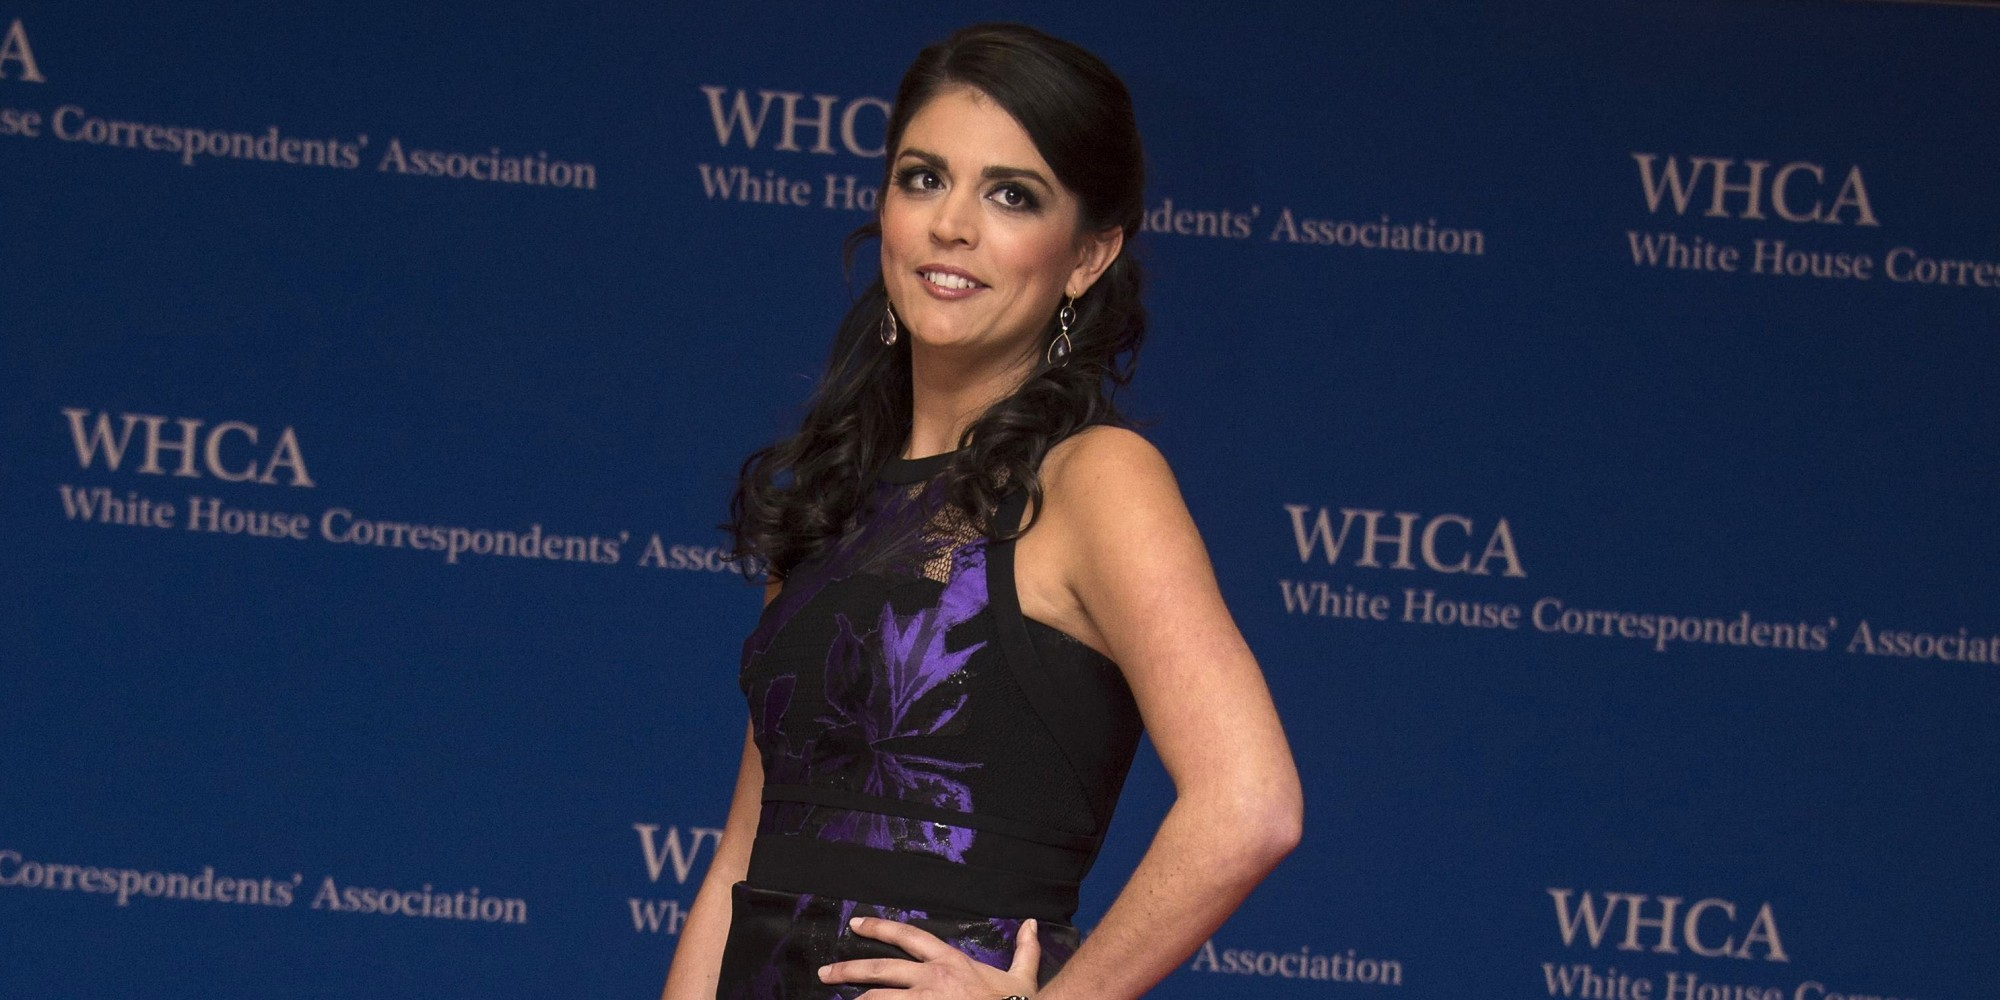 cecily strong biographycecily strong snl, cecily strong boyfriend, cecily strong melania trump, cecily strong imdb, cecily strong parents, cecily strong correspondents dinner speech, cecily strong biography, cecily strong wiki, cecily strong married, cecily strong actress, cecily strong stand up, cecily strong melania, cecily strong italian